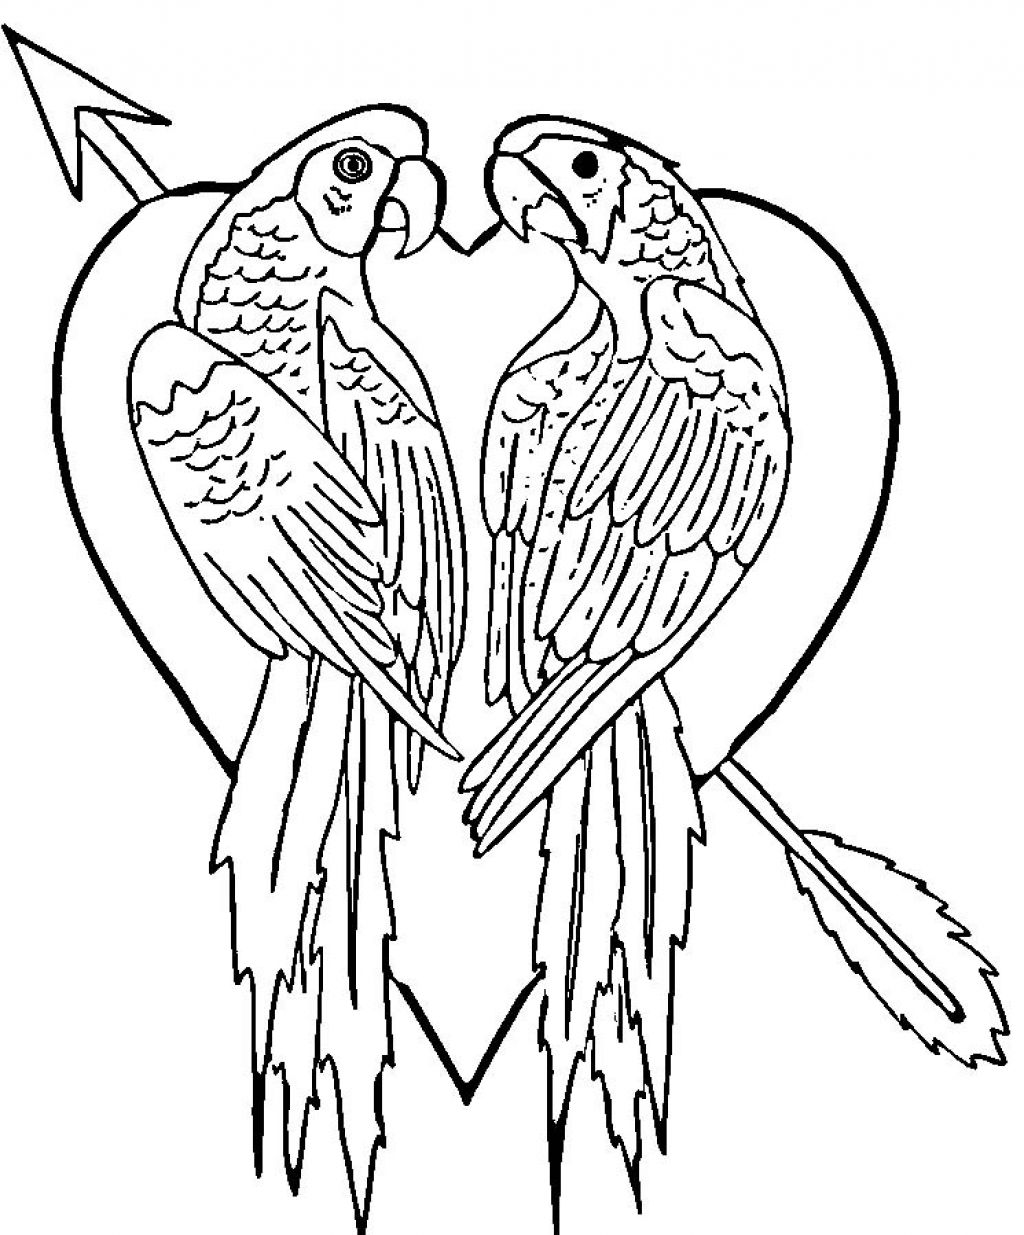 colouring picture of parrot parrot looking for food coloring page download print parrot colouring of picture